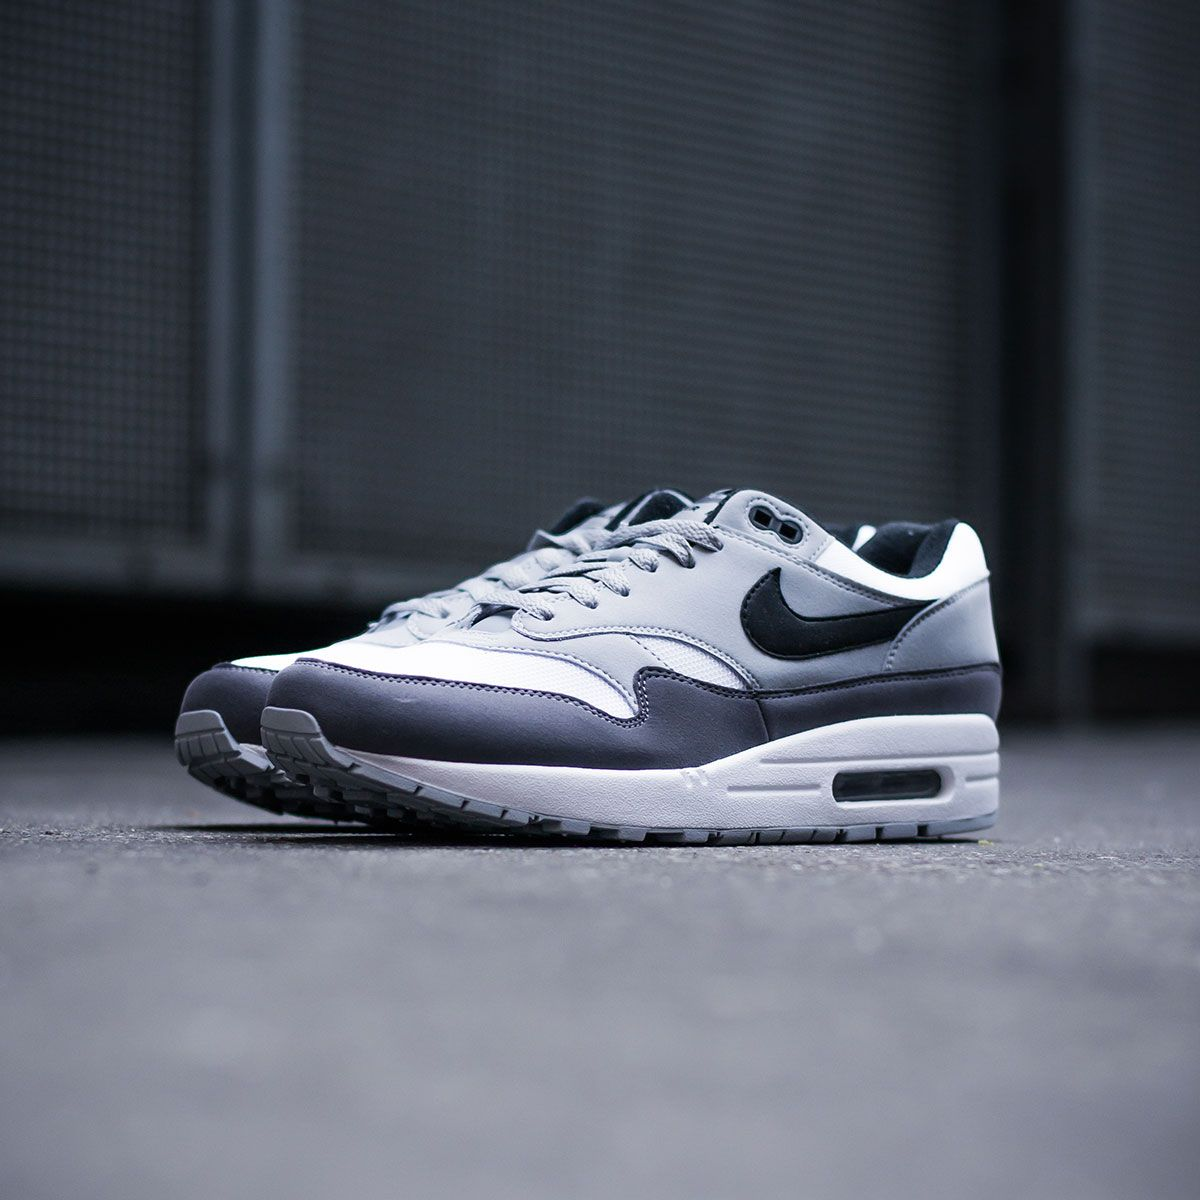 685d0ed0a582f7 Classic! The Nike Air Max 1 is now available in a versatile white ...